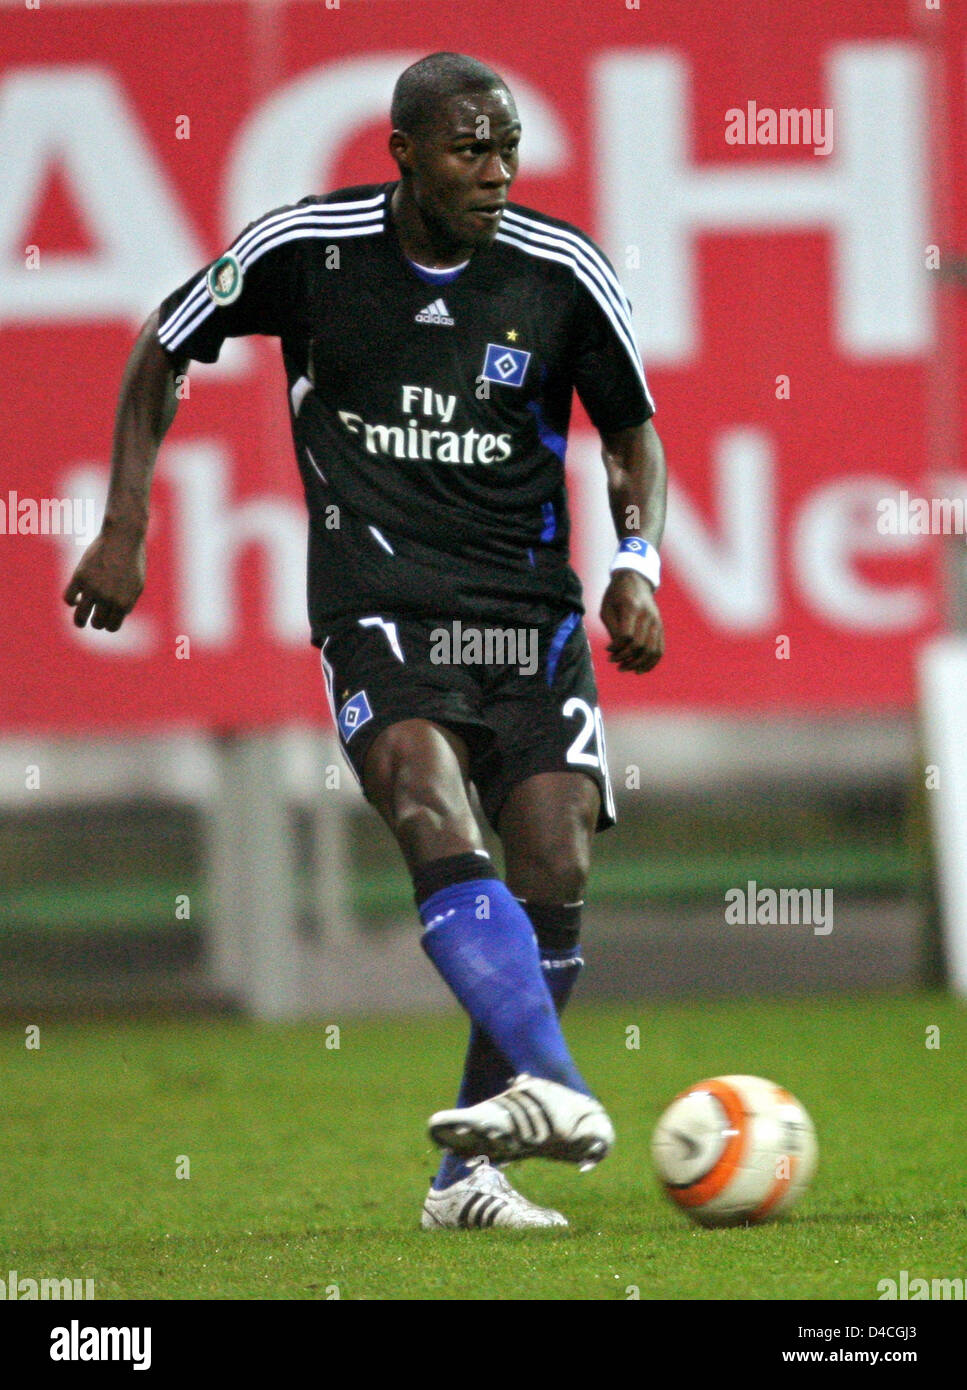 Guy Demel of Hamburg controls the ball during the DFB Cup round of 16 match Rot-Weiss Essen v SV Hamburg at Georg - Stock Image